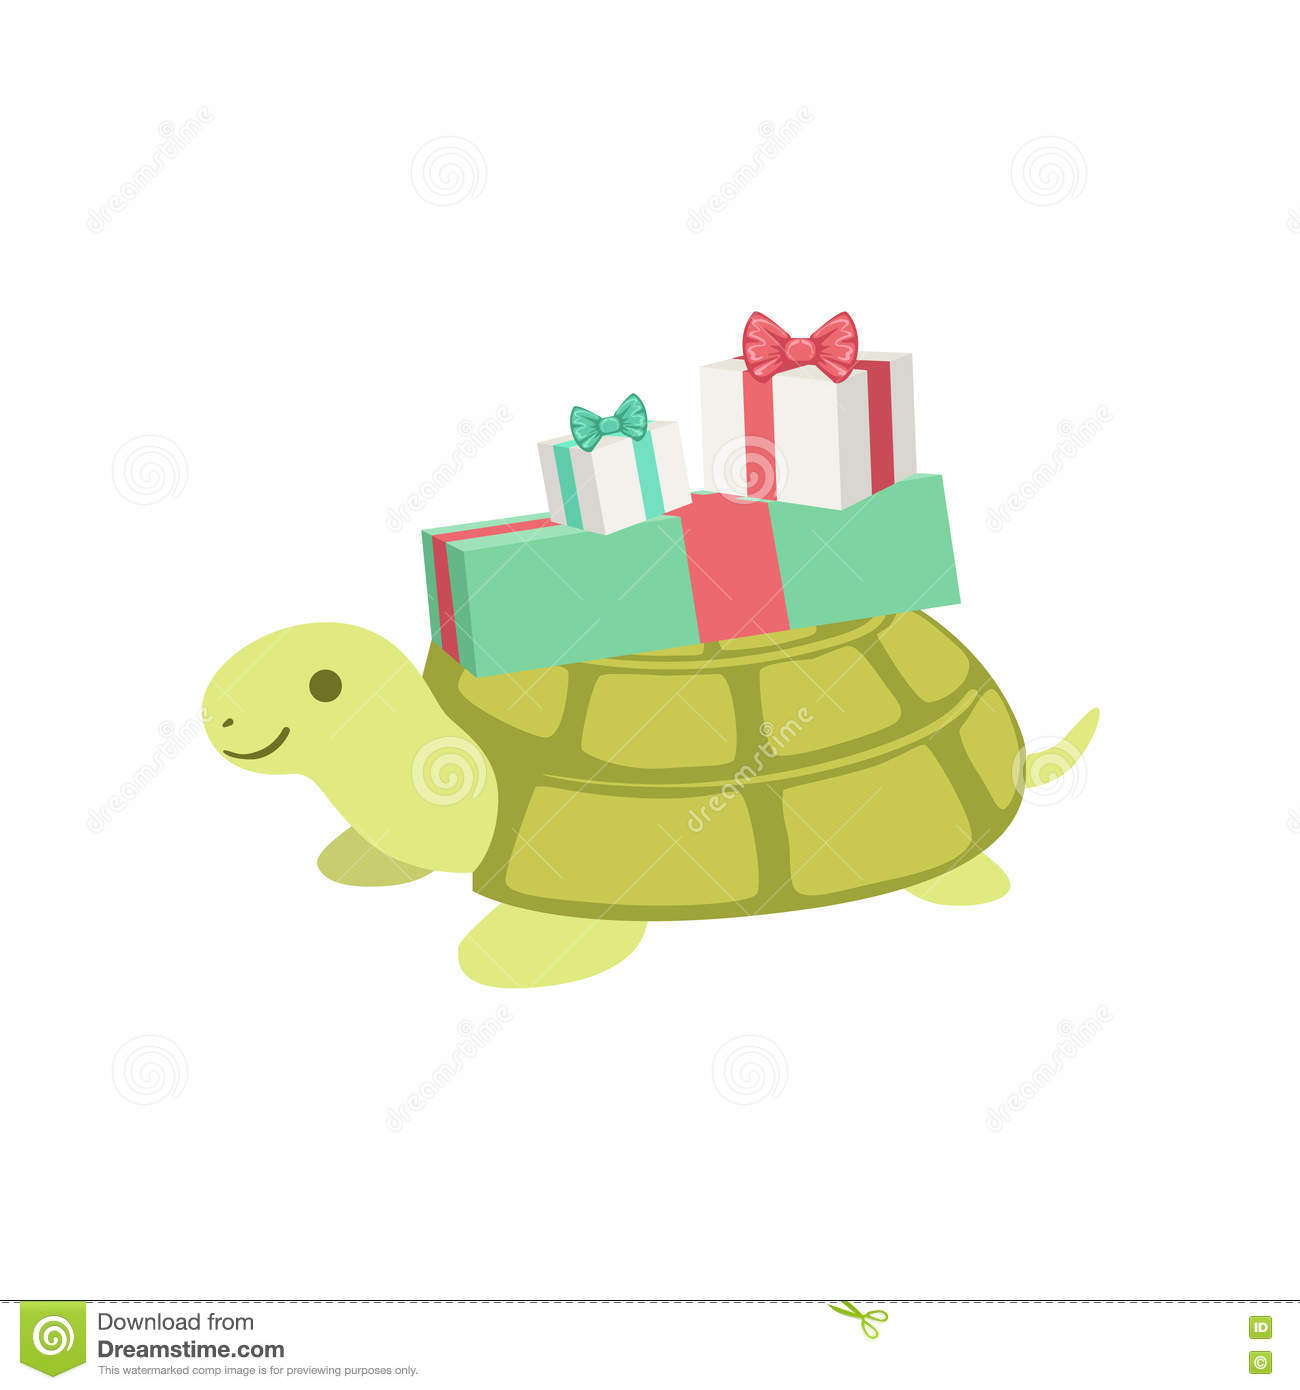 Turtle cute animal character attending birthday party